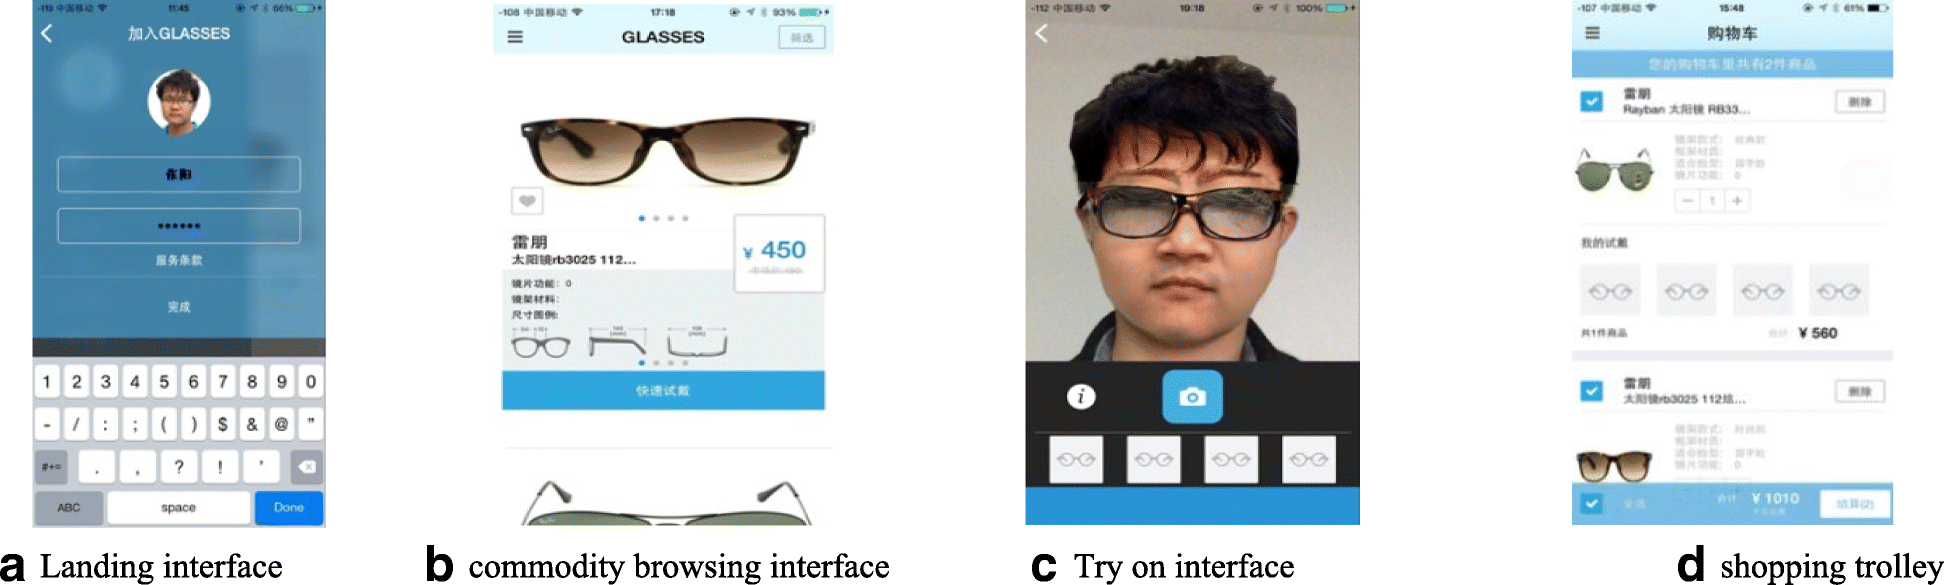 c6fc49b8187 Augmented reality virtual glasses try-on technology based on iOS ...